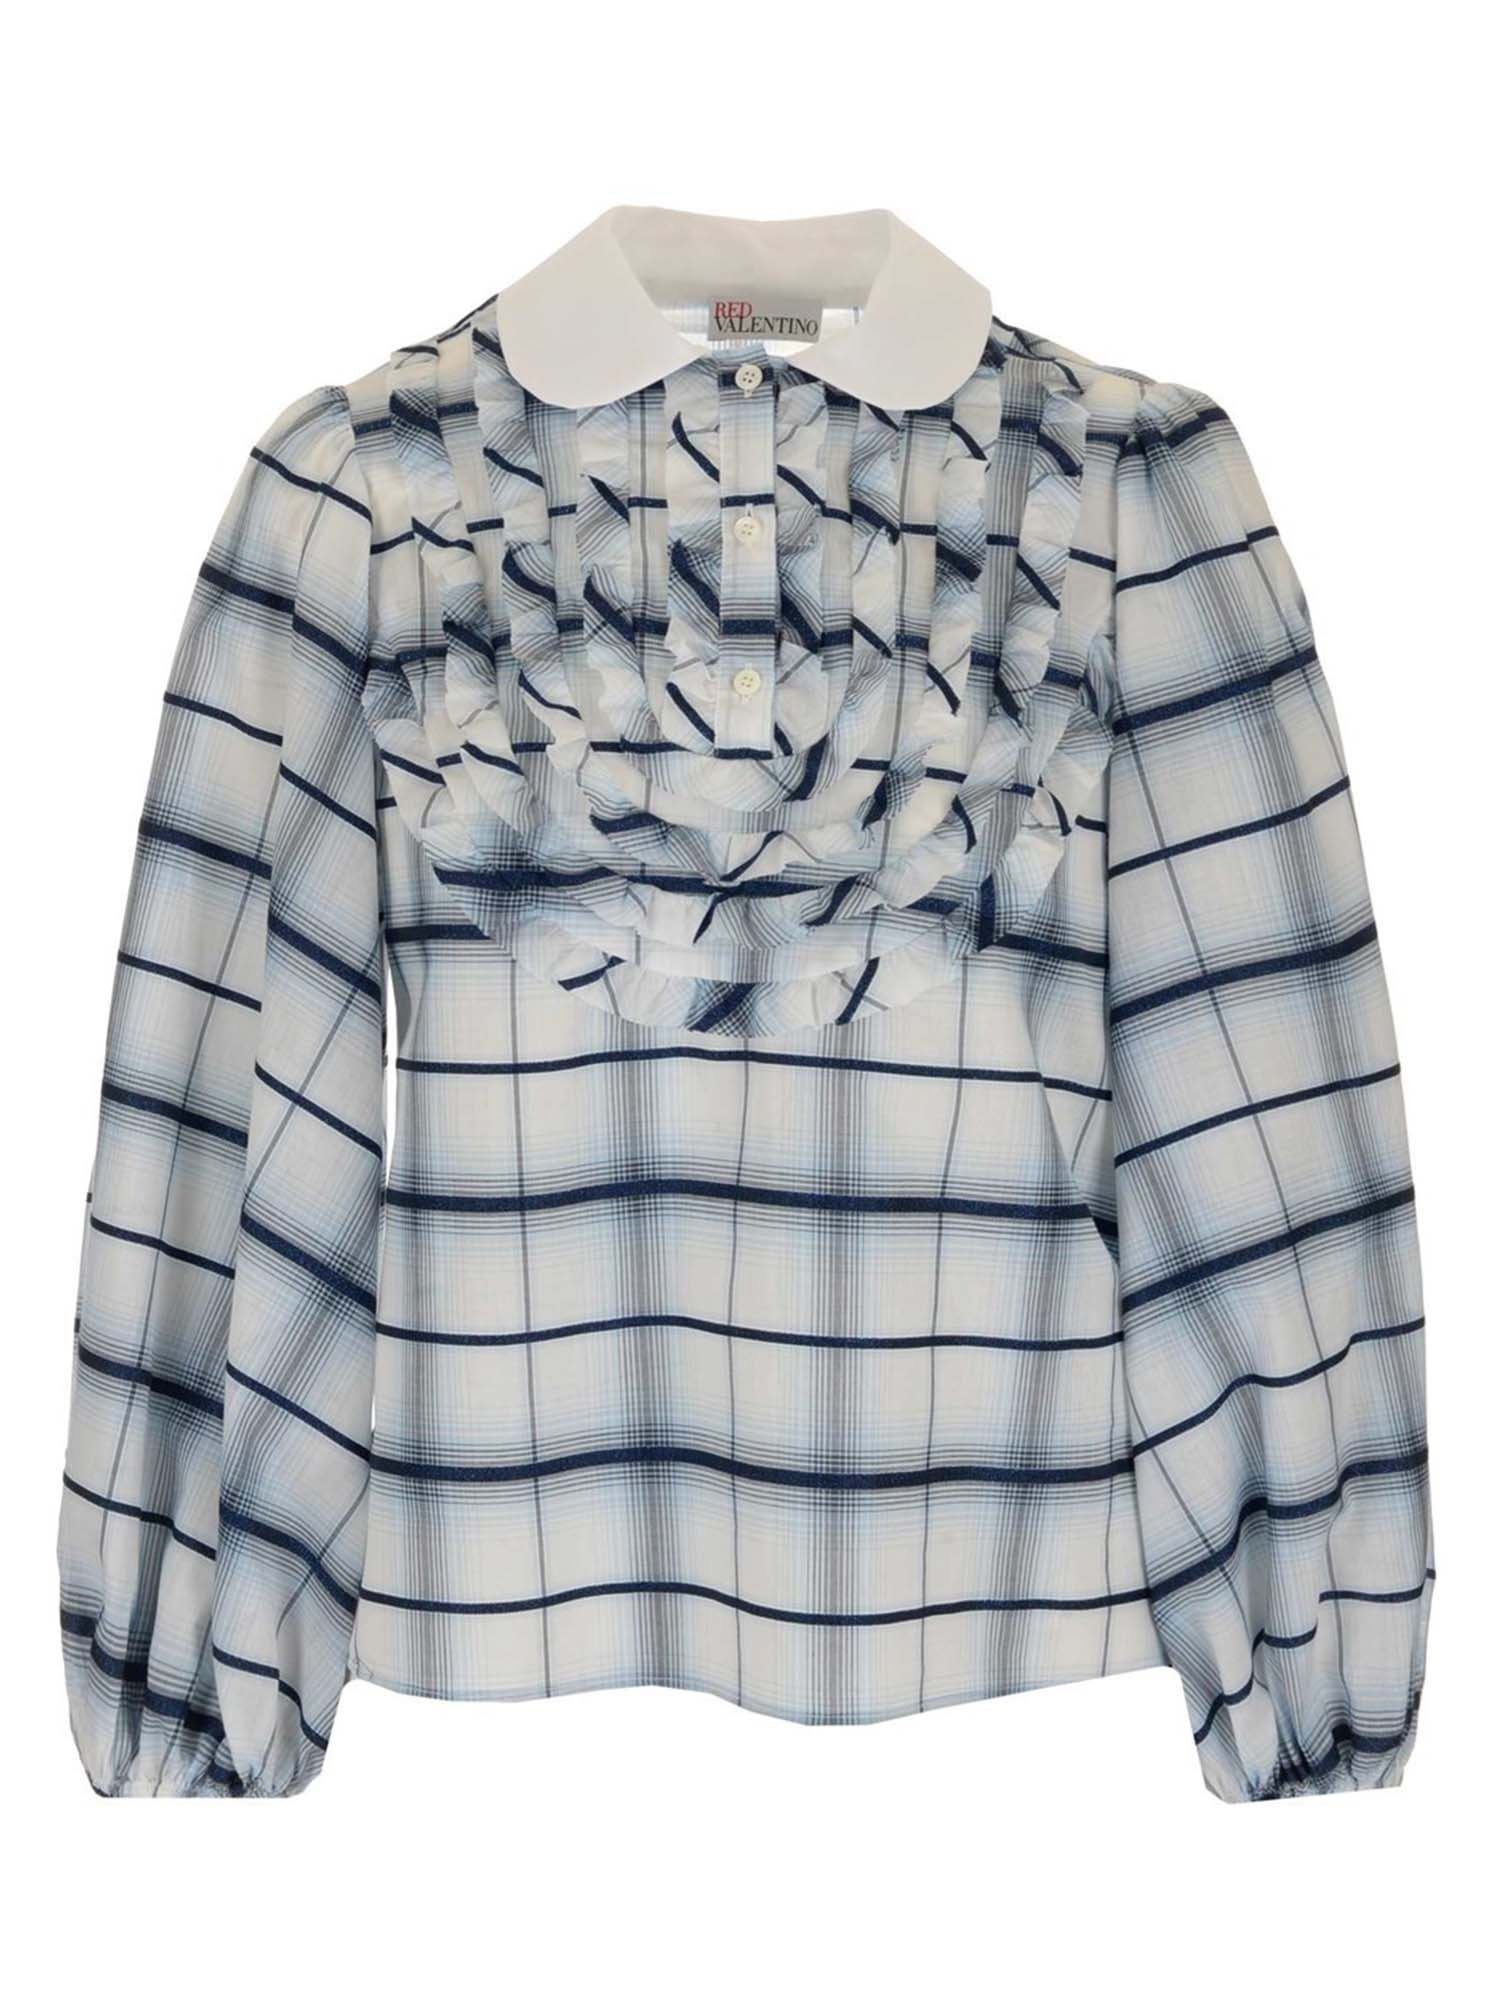 Red Valentino Blouses CHECKED SHIRT IN LIGHT BLUE